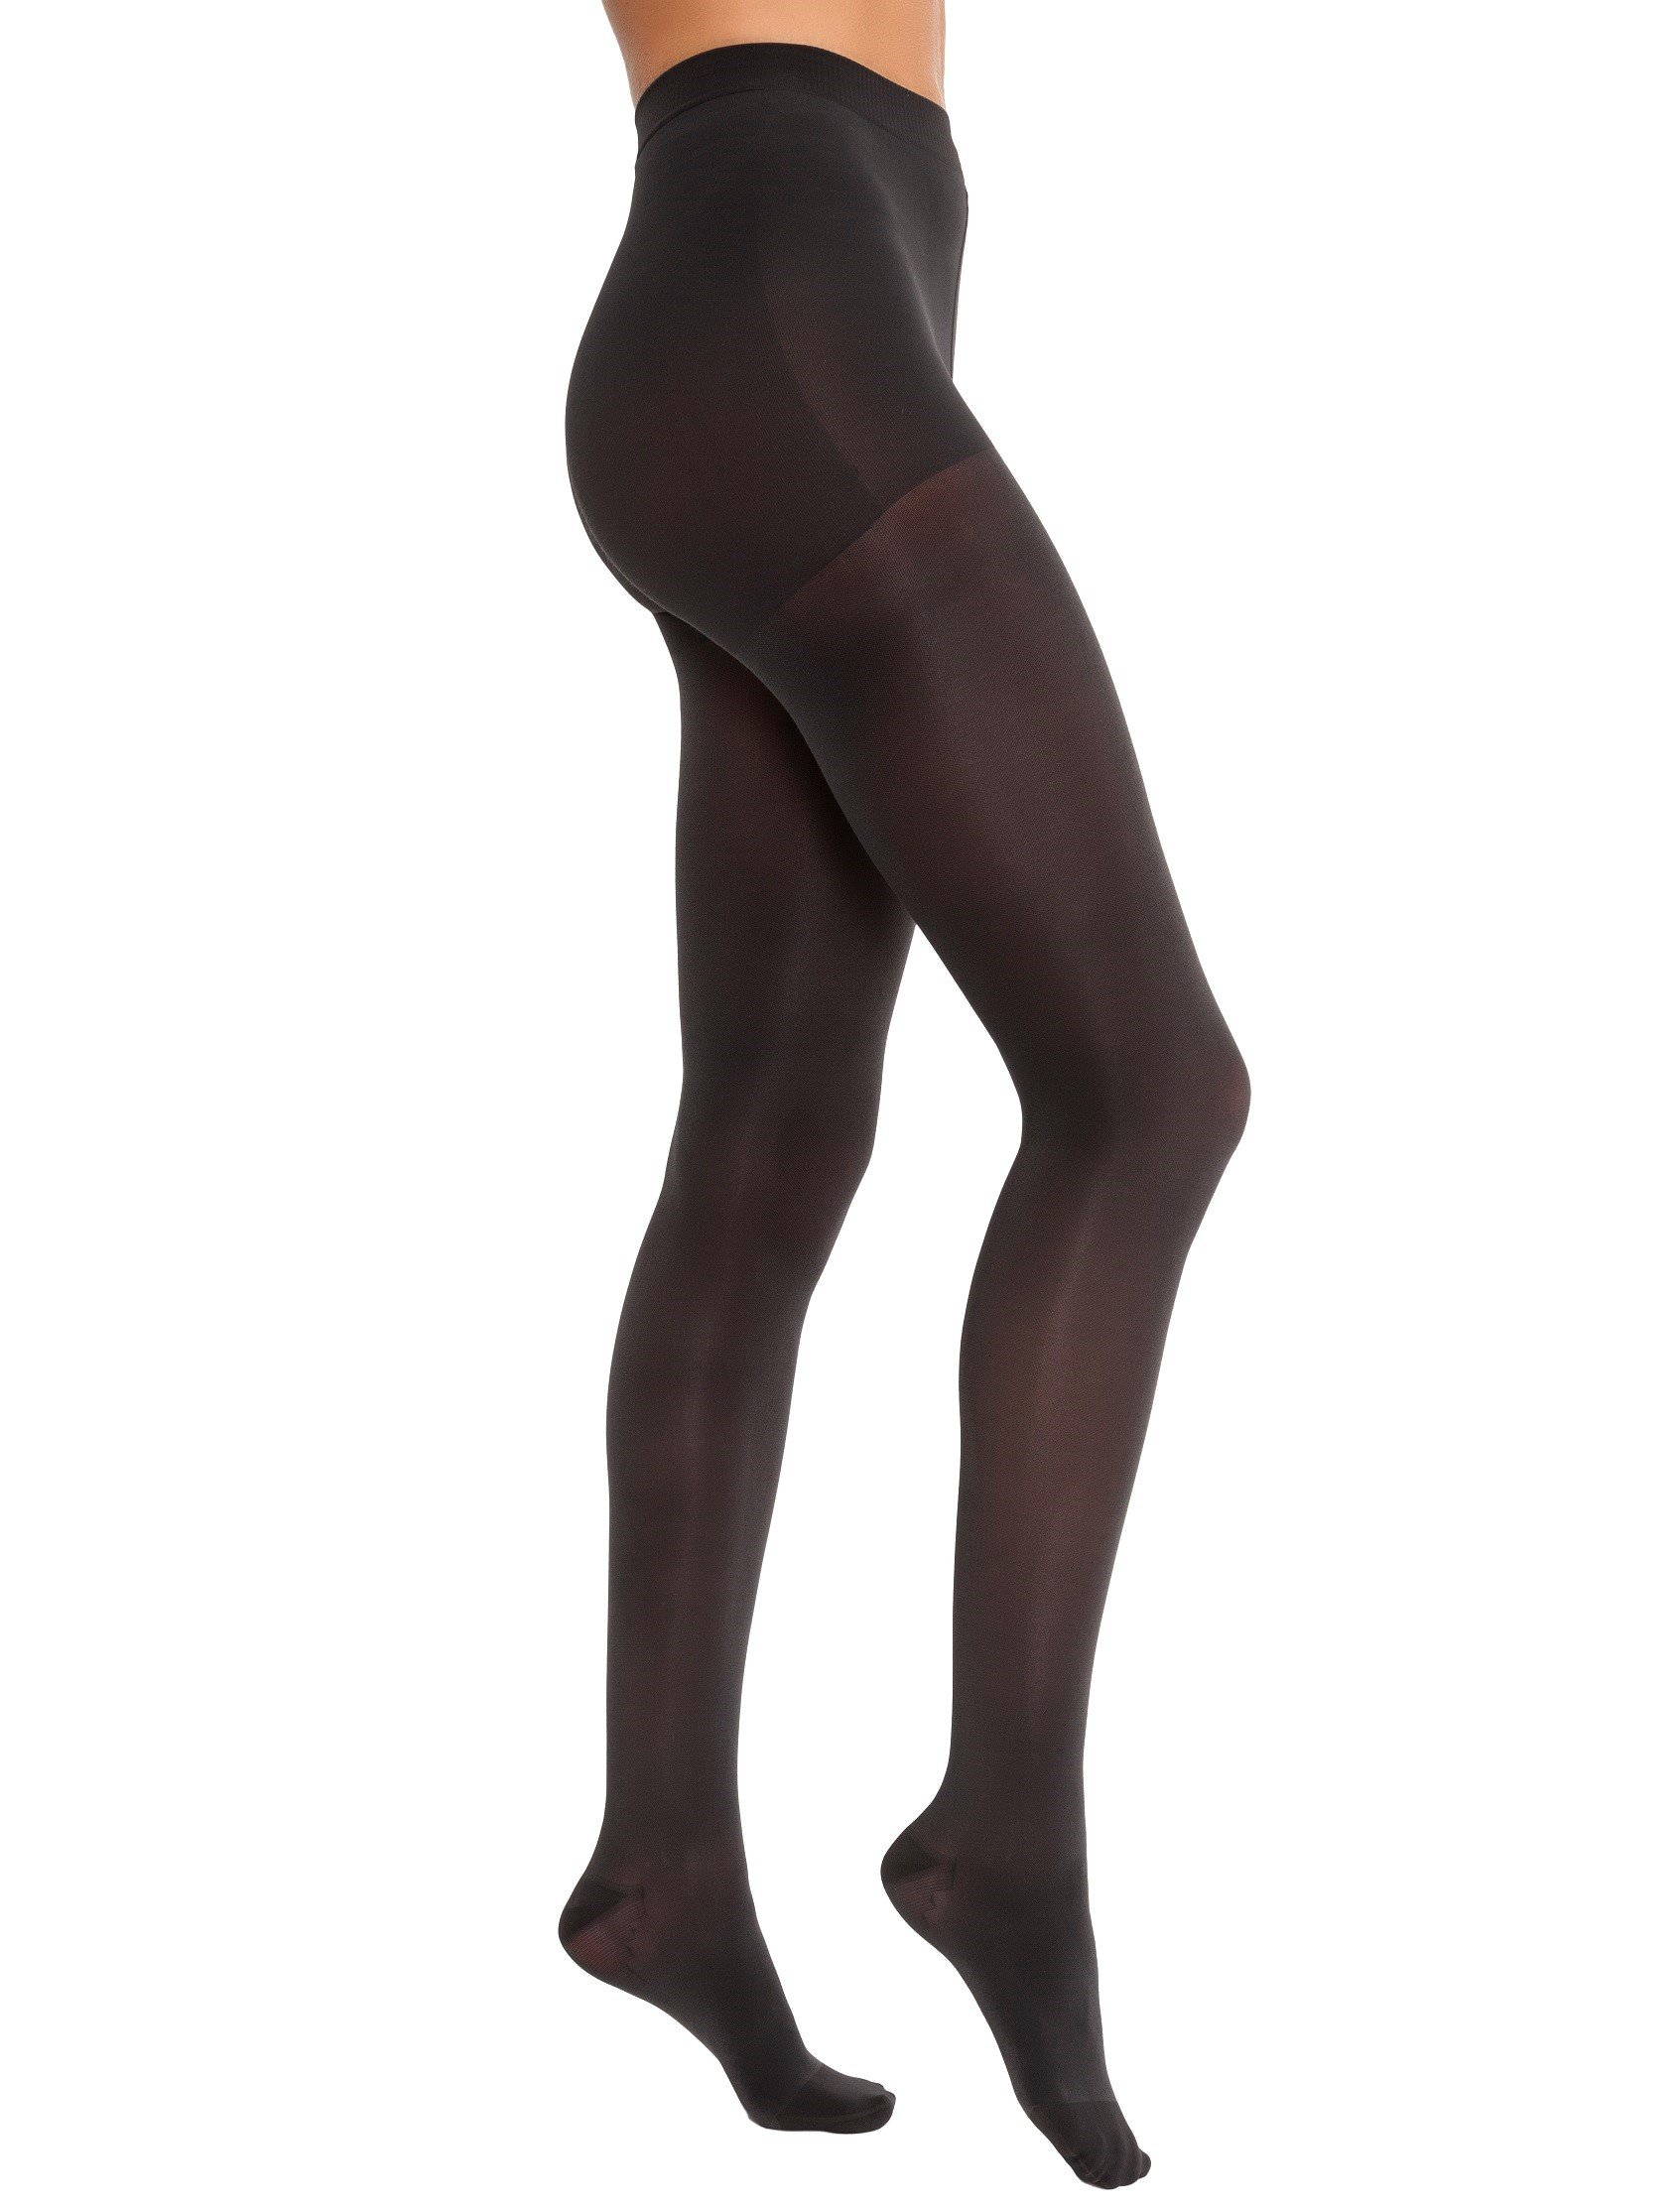 JOBST Women's Opaque 20-30 mmHg Waist High Compression Stocking (Anthracite, Small)